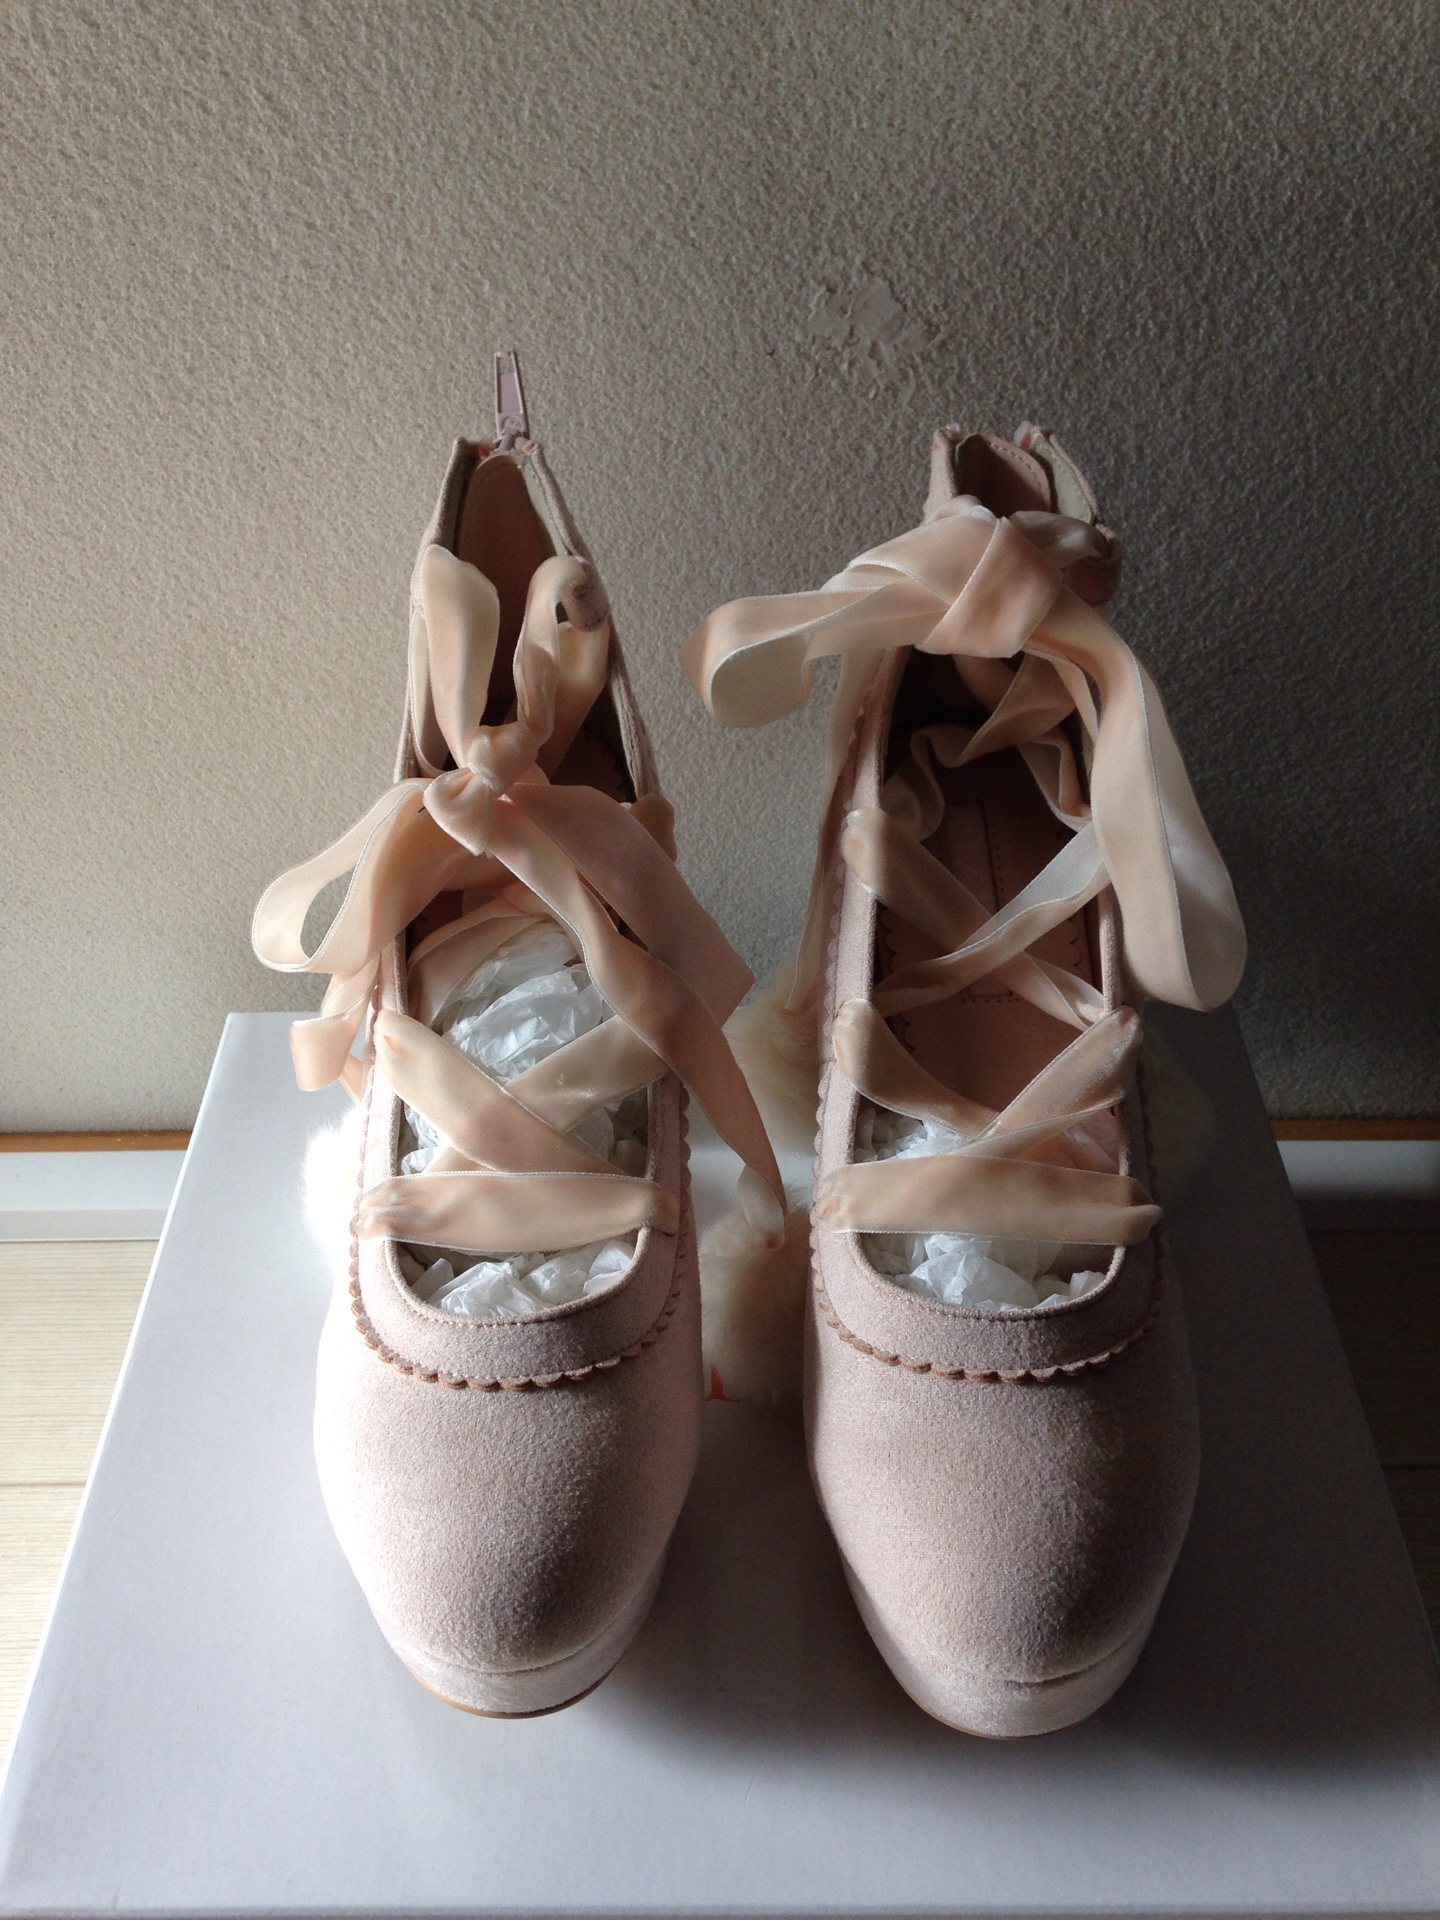 55f16f1be LIZ LISA】pre-owned Pink Pom-pom Pumps Shoes 0297 – You and Me JAPAN